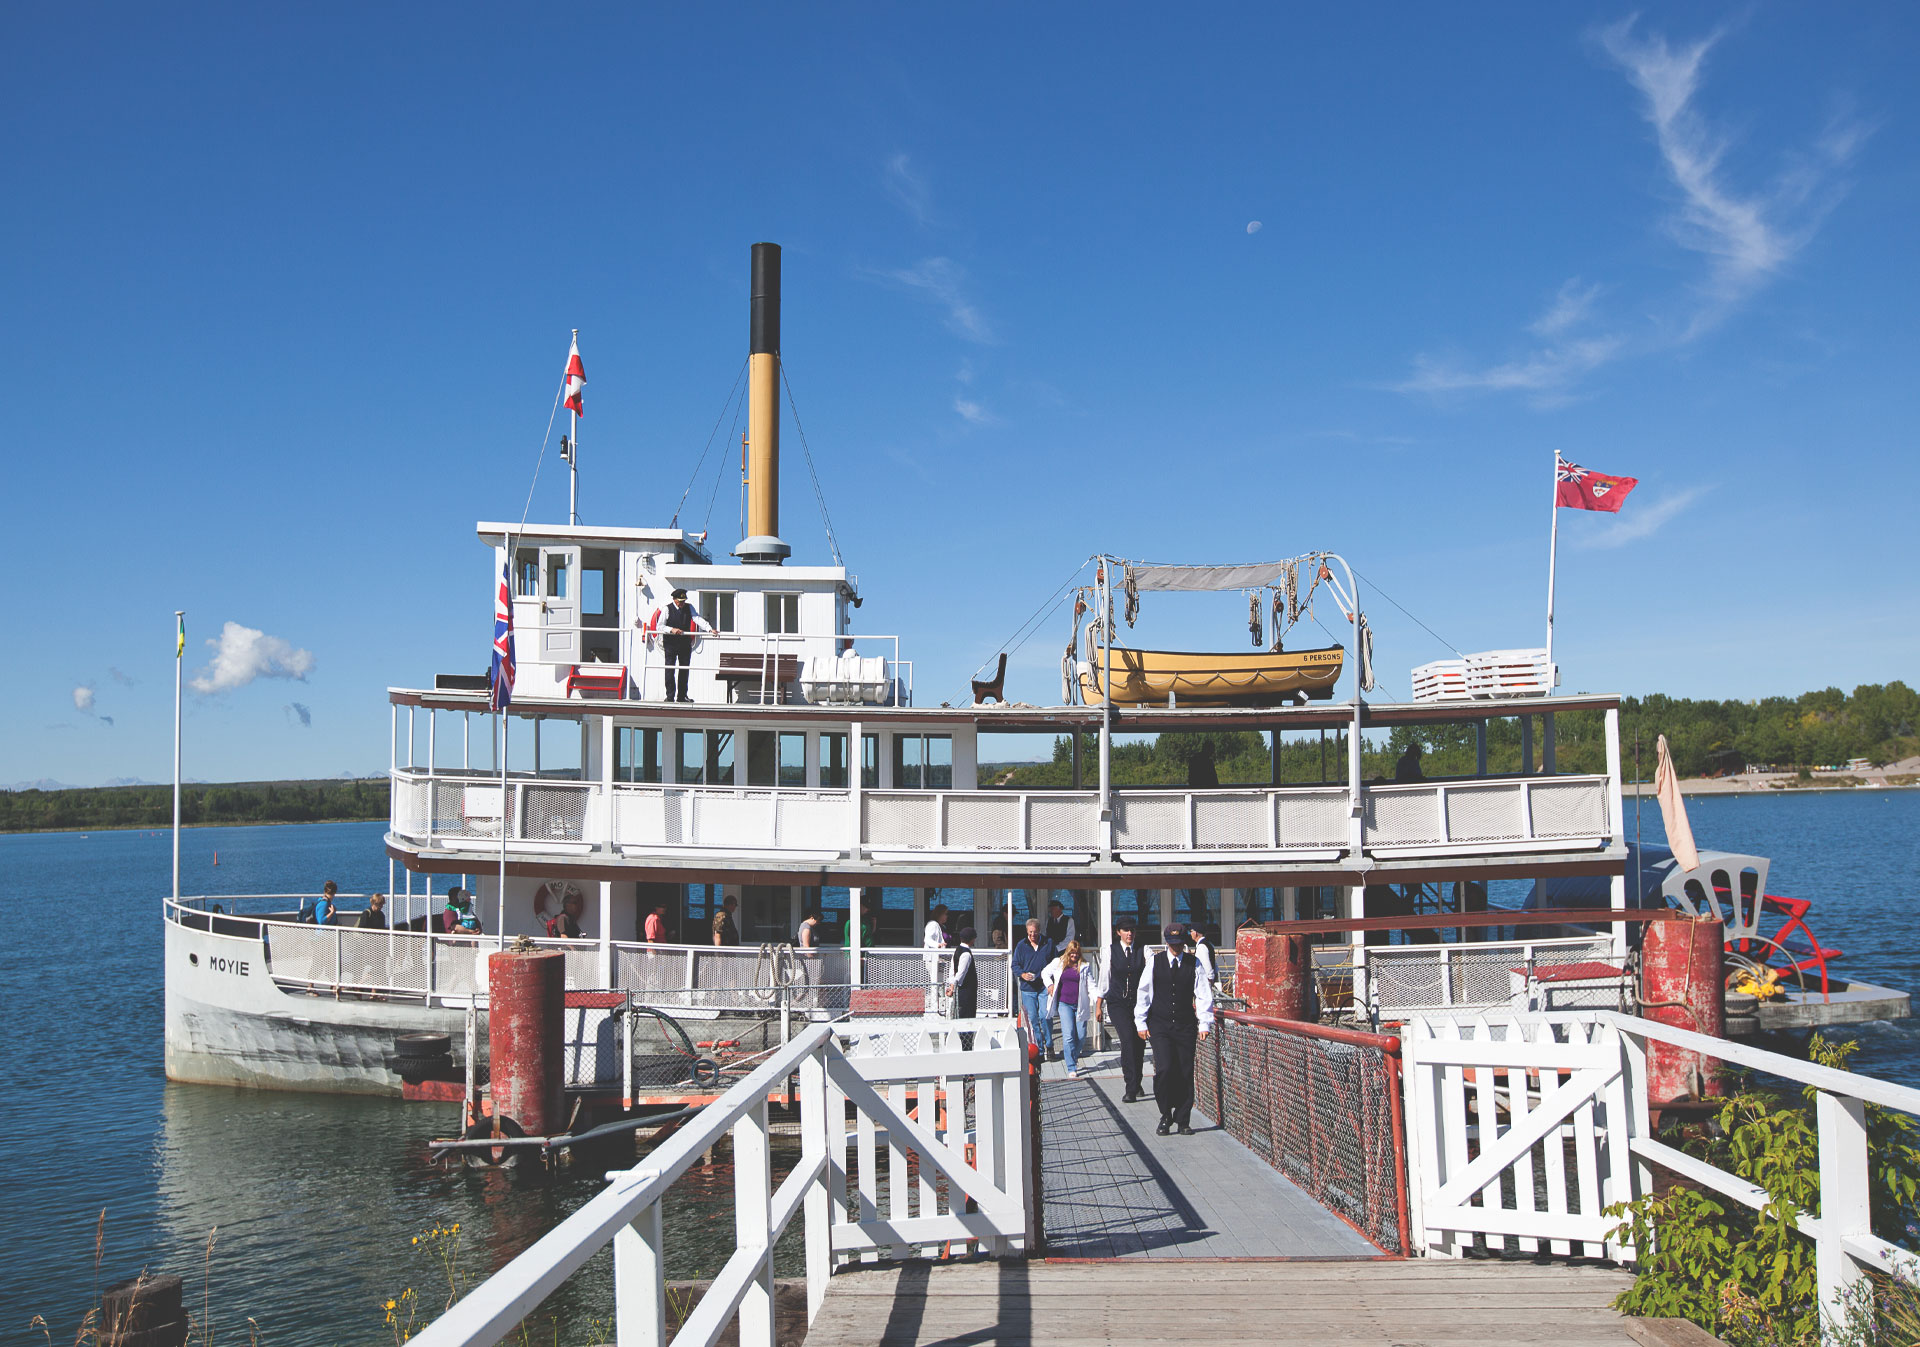 S.S. Moyie Paddlewheeler at Heritage Park